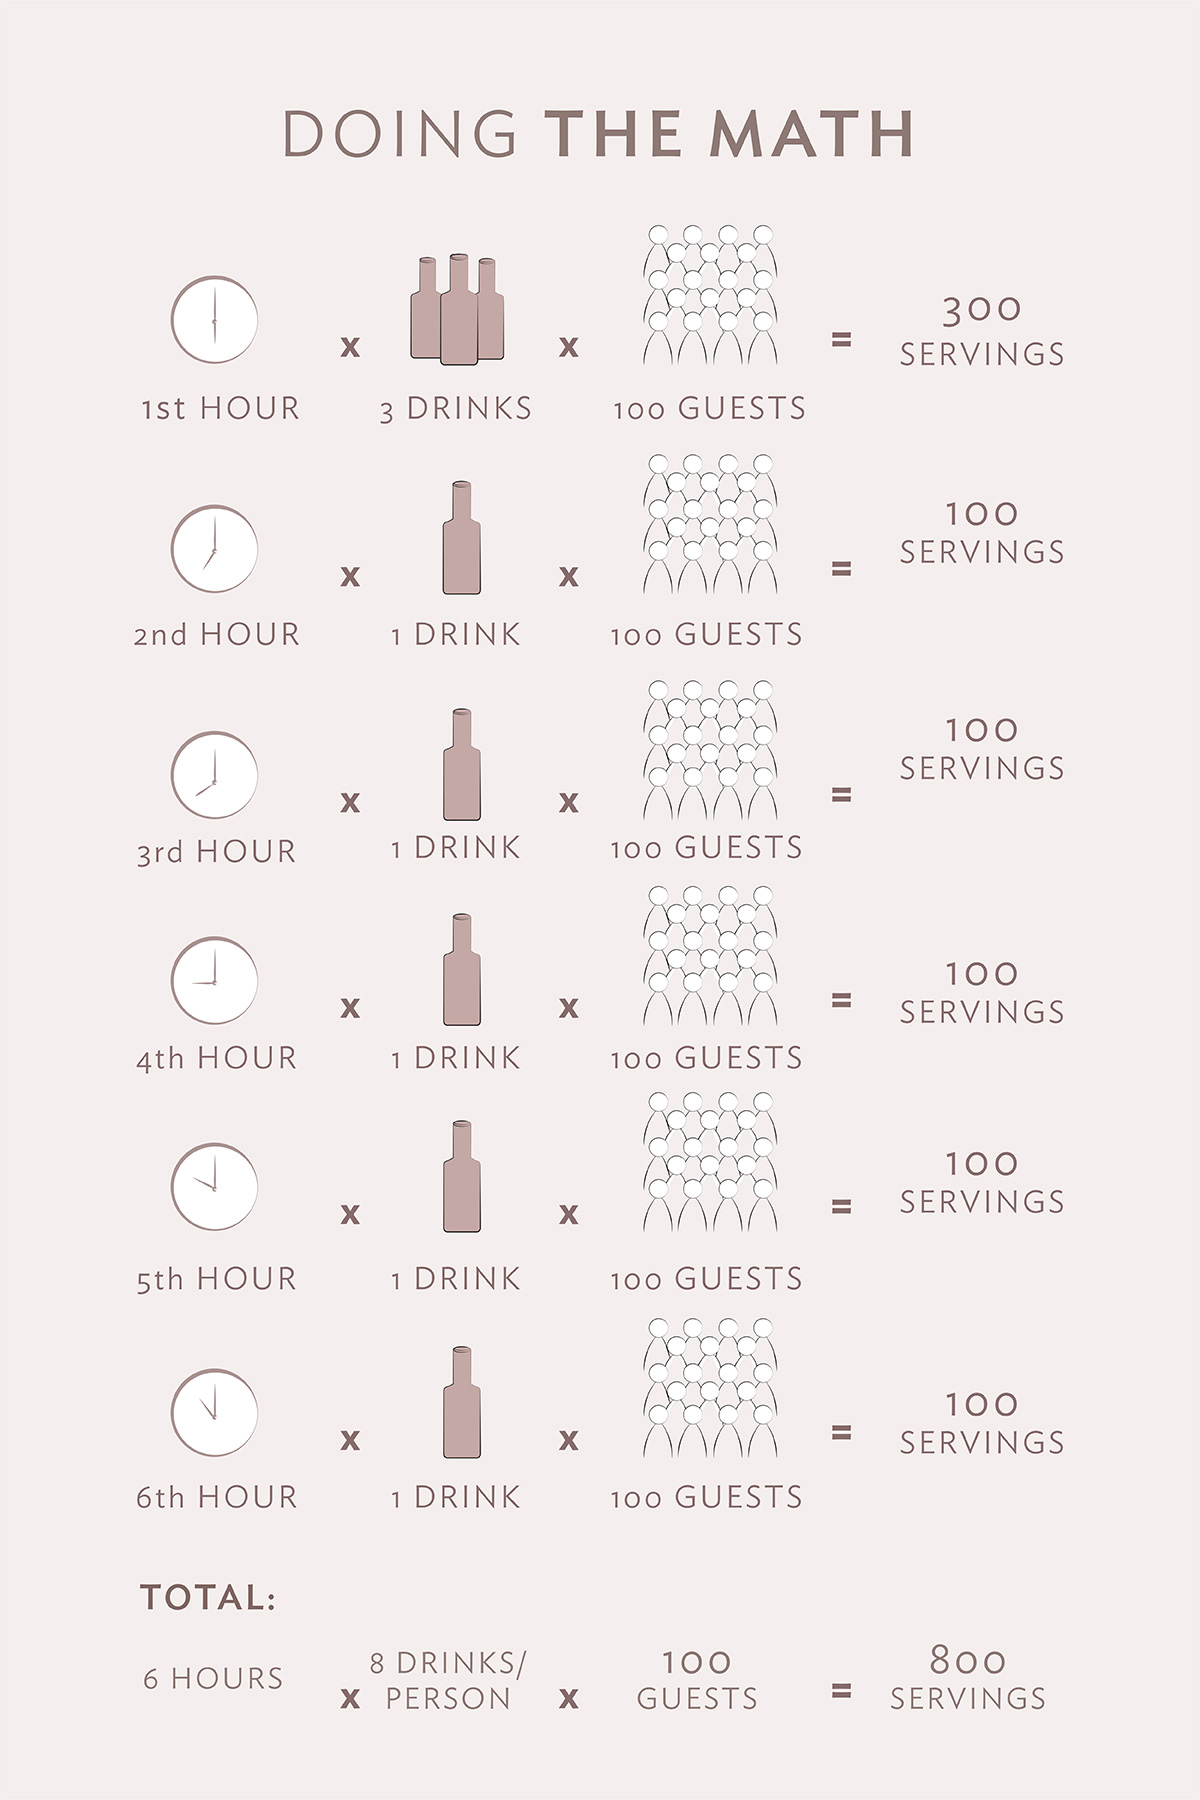 Doing the math 1st hour: 3 drinks x 100 guests = 300 servings 2nd hour: 1 drink x 100 guests = 100 servings 3rd hour: 1 drink x 100 guests = 100 servings 4th hour: 1 drink x 100 guests = 100 servings 5th hour: 1 drink x 100 guests = 100 servings 6th hour: 1 drink x 100 guests = 100 servings TOTAL: 6 hours 8 drinks per person 100 guests 800 servings